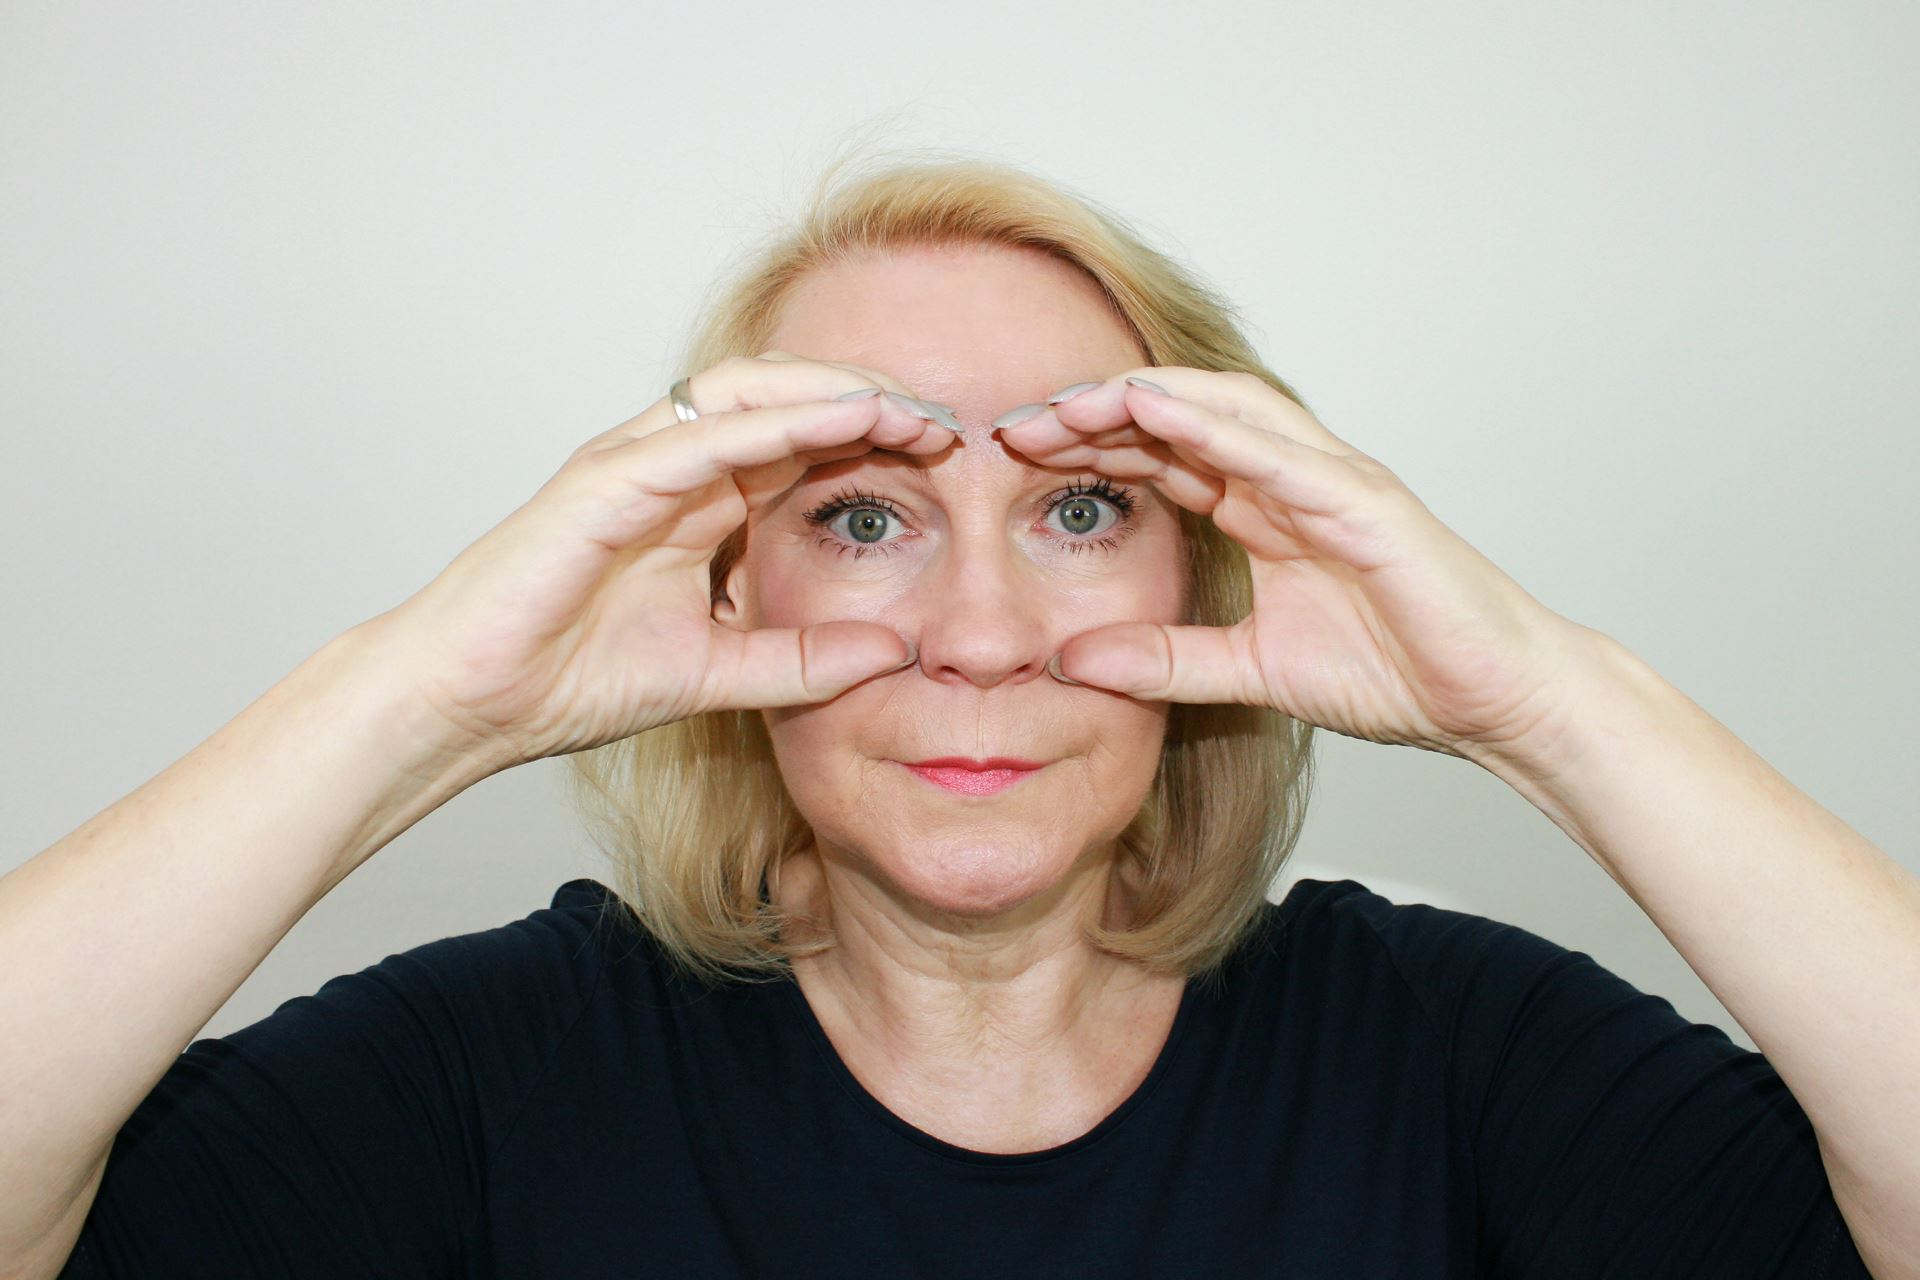 Barbara Face Yoga, binocular pose